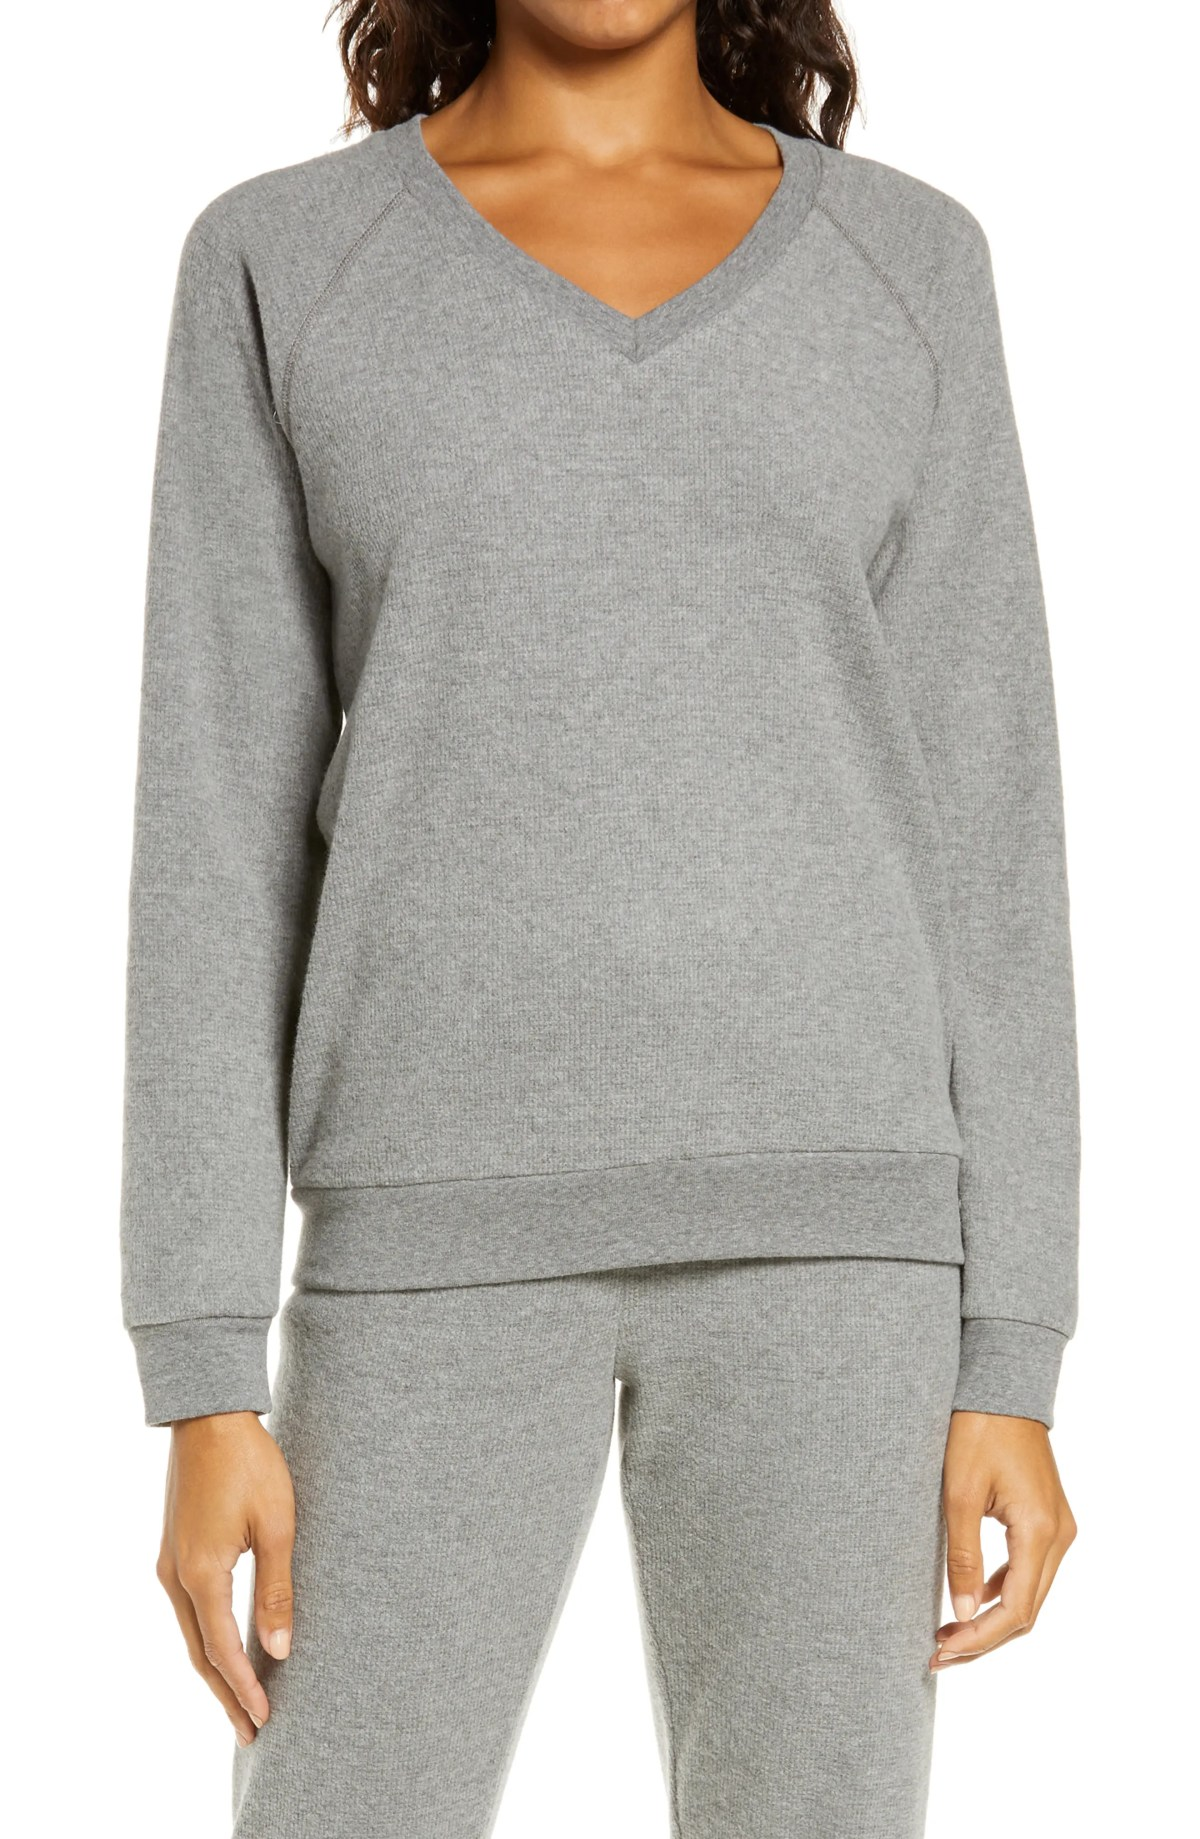 PJ SALVAGE Thermal V-Neck Pullover, Main, color, CHARCOAL